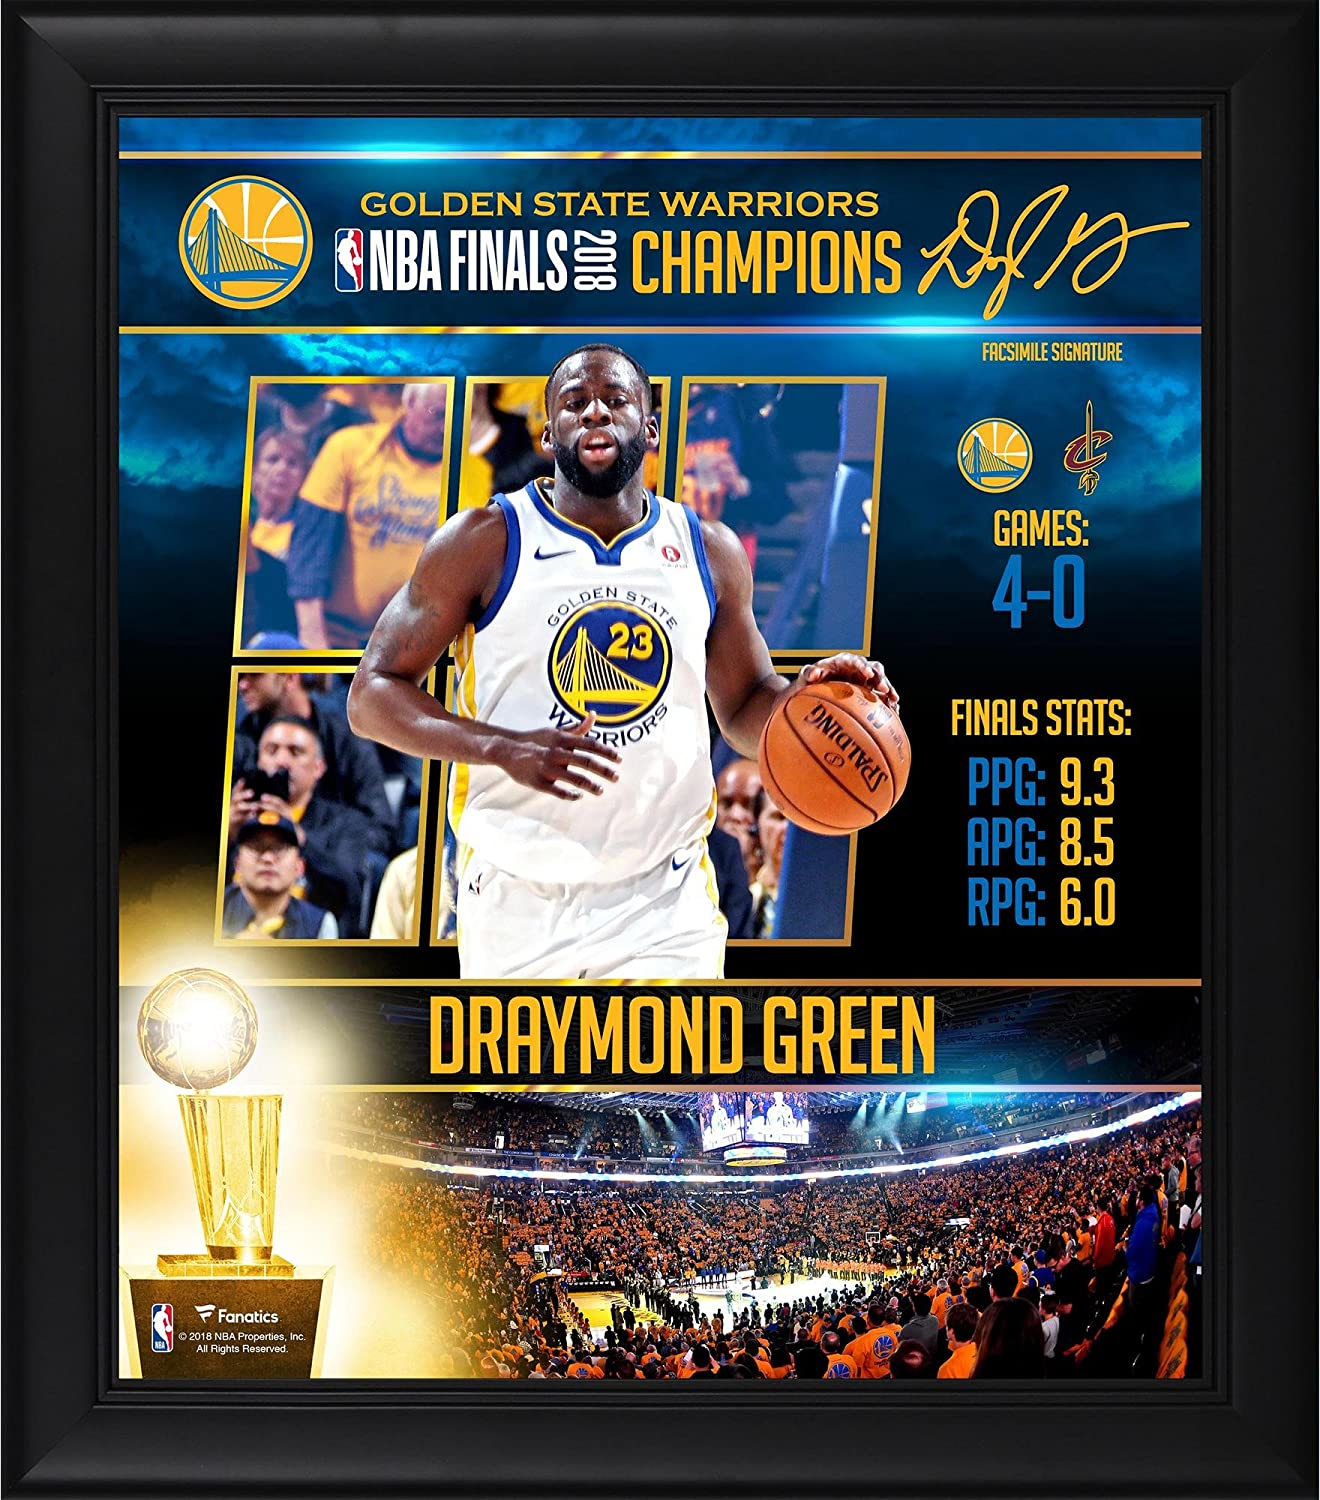 Fanatics Authentic NBA Golden State Warriors Draymond Green Golden State Warriors Framed 15